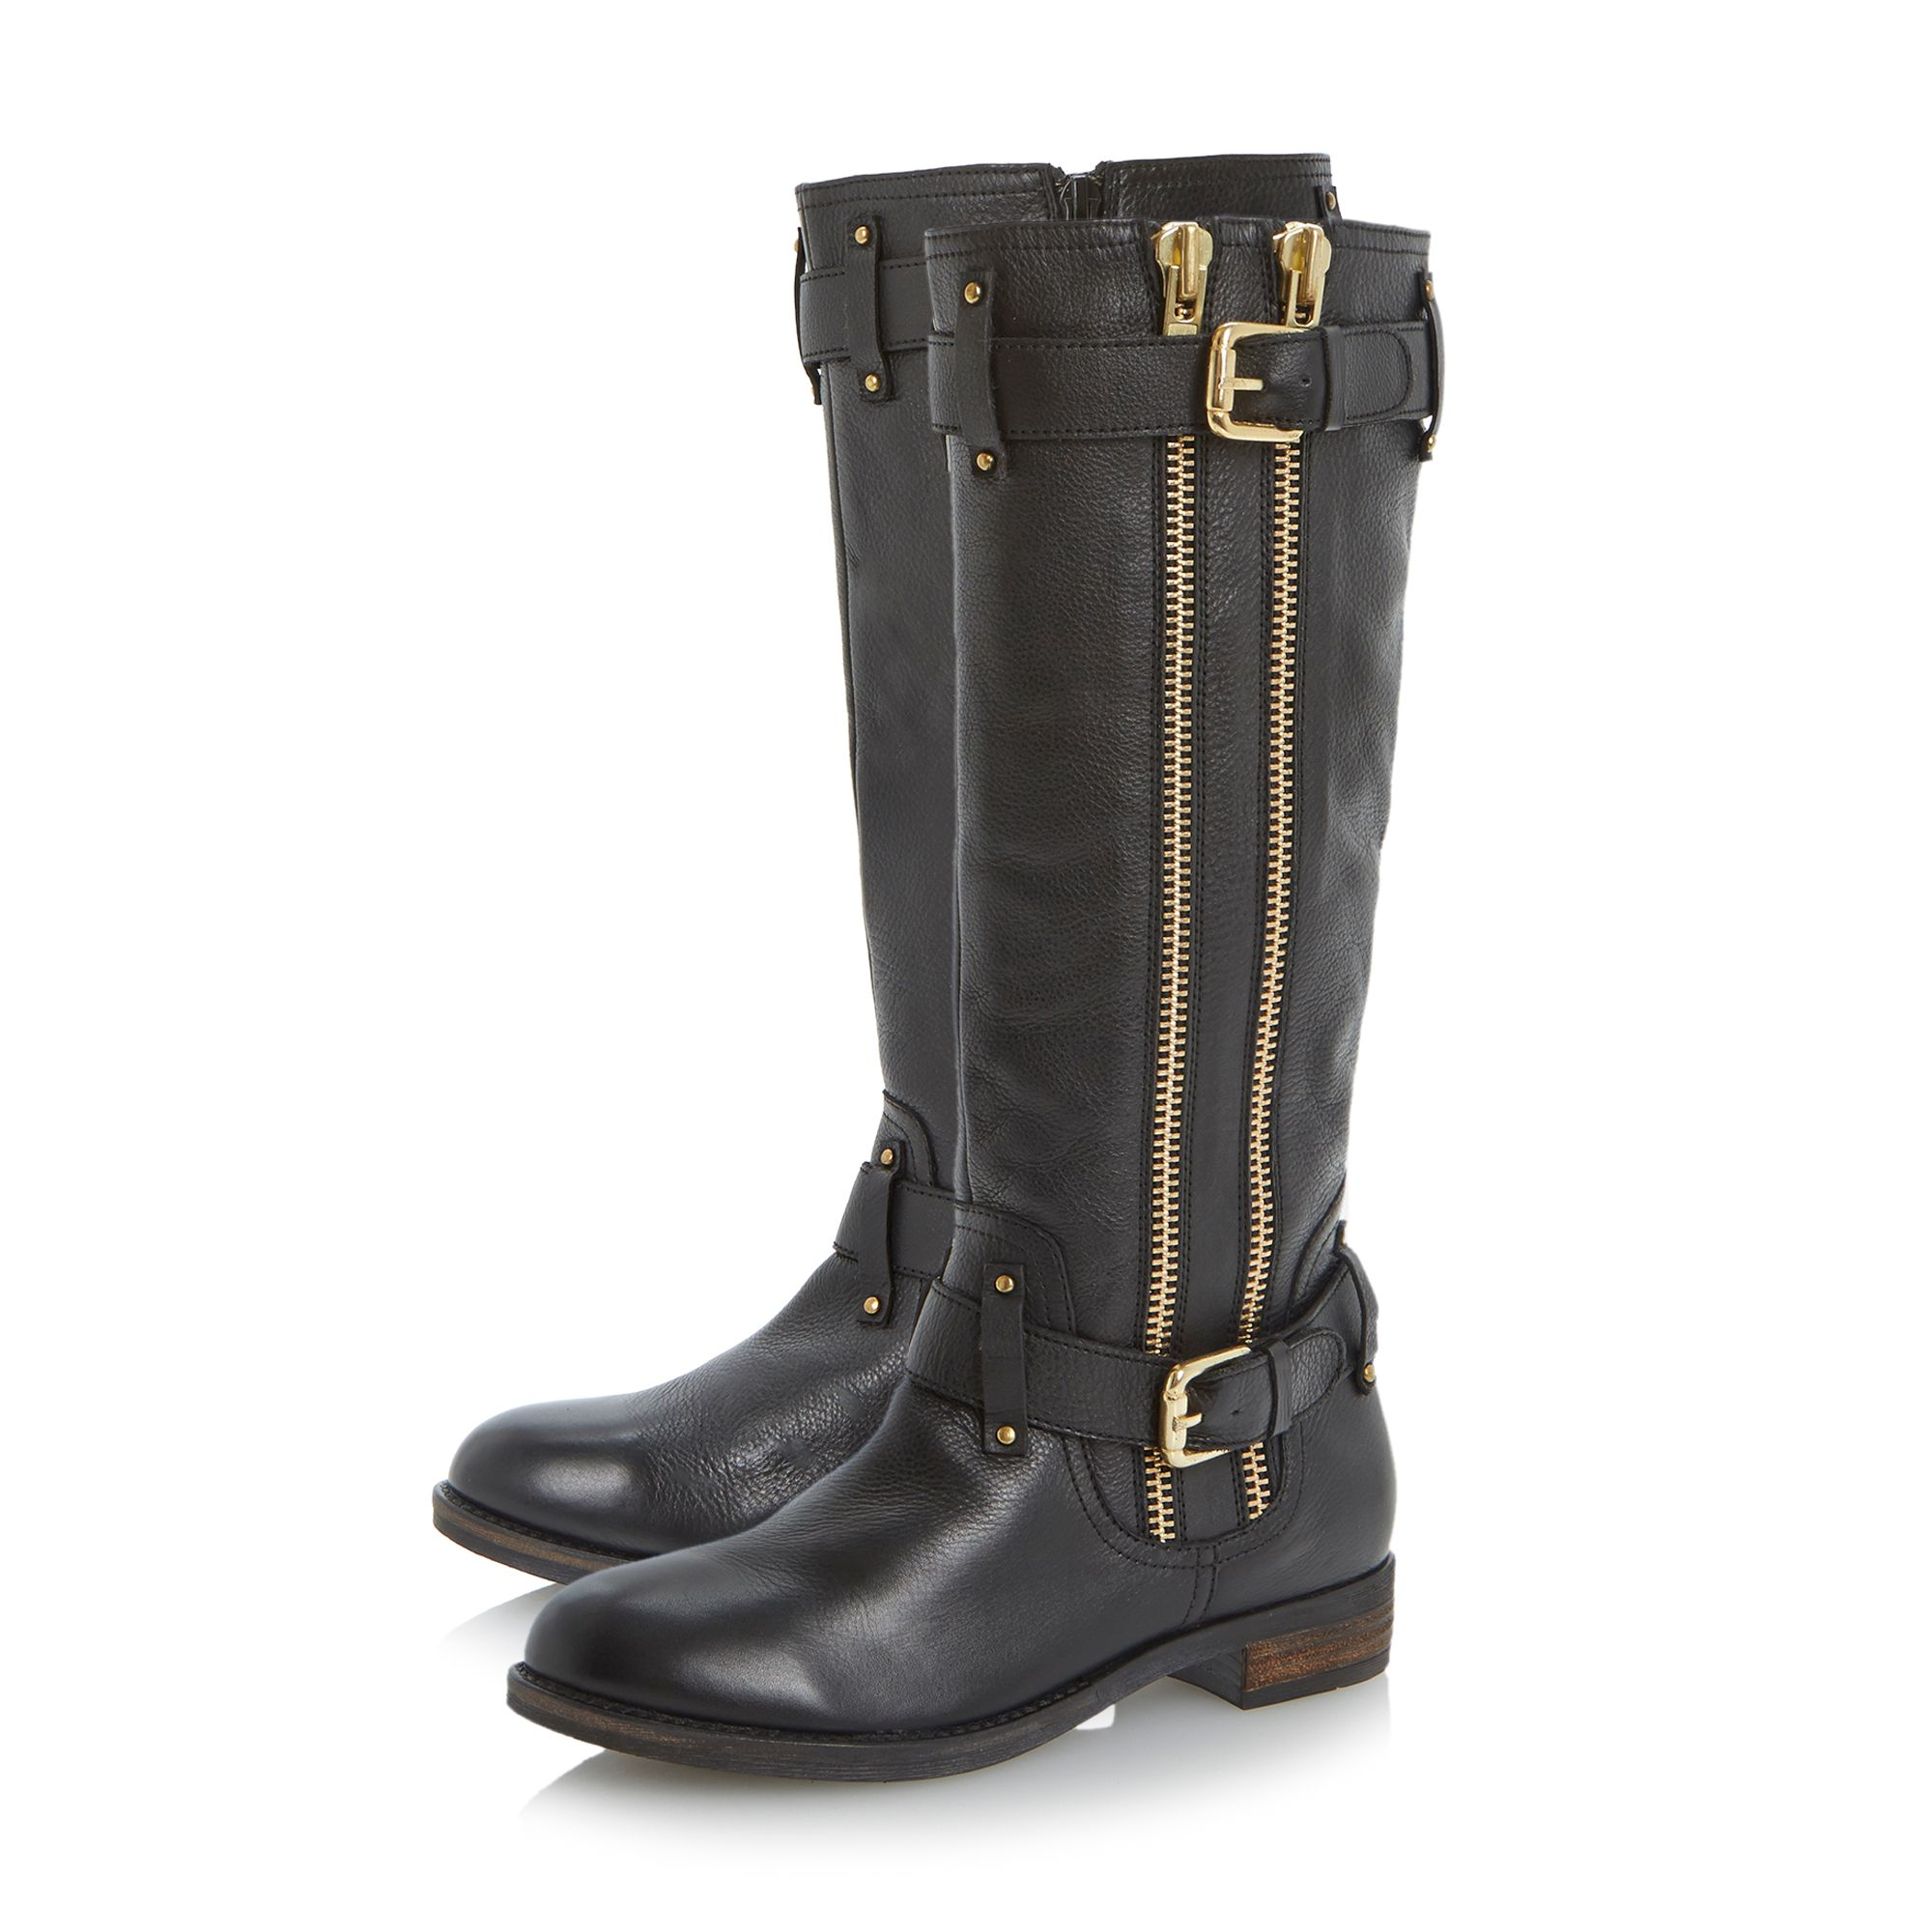 Traffik knee high biker boots